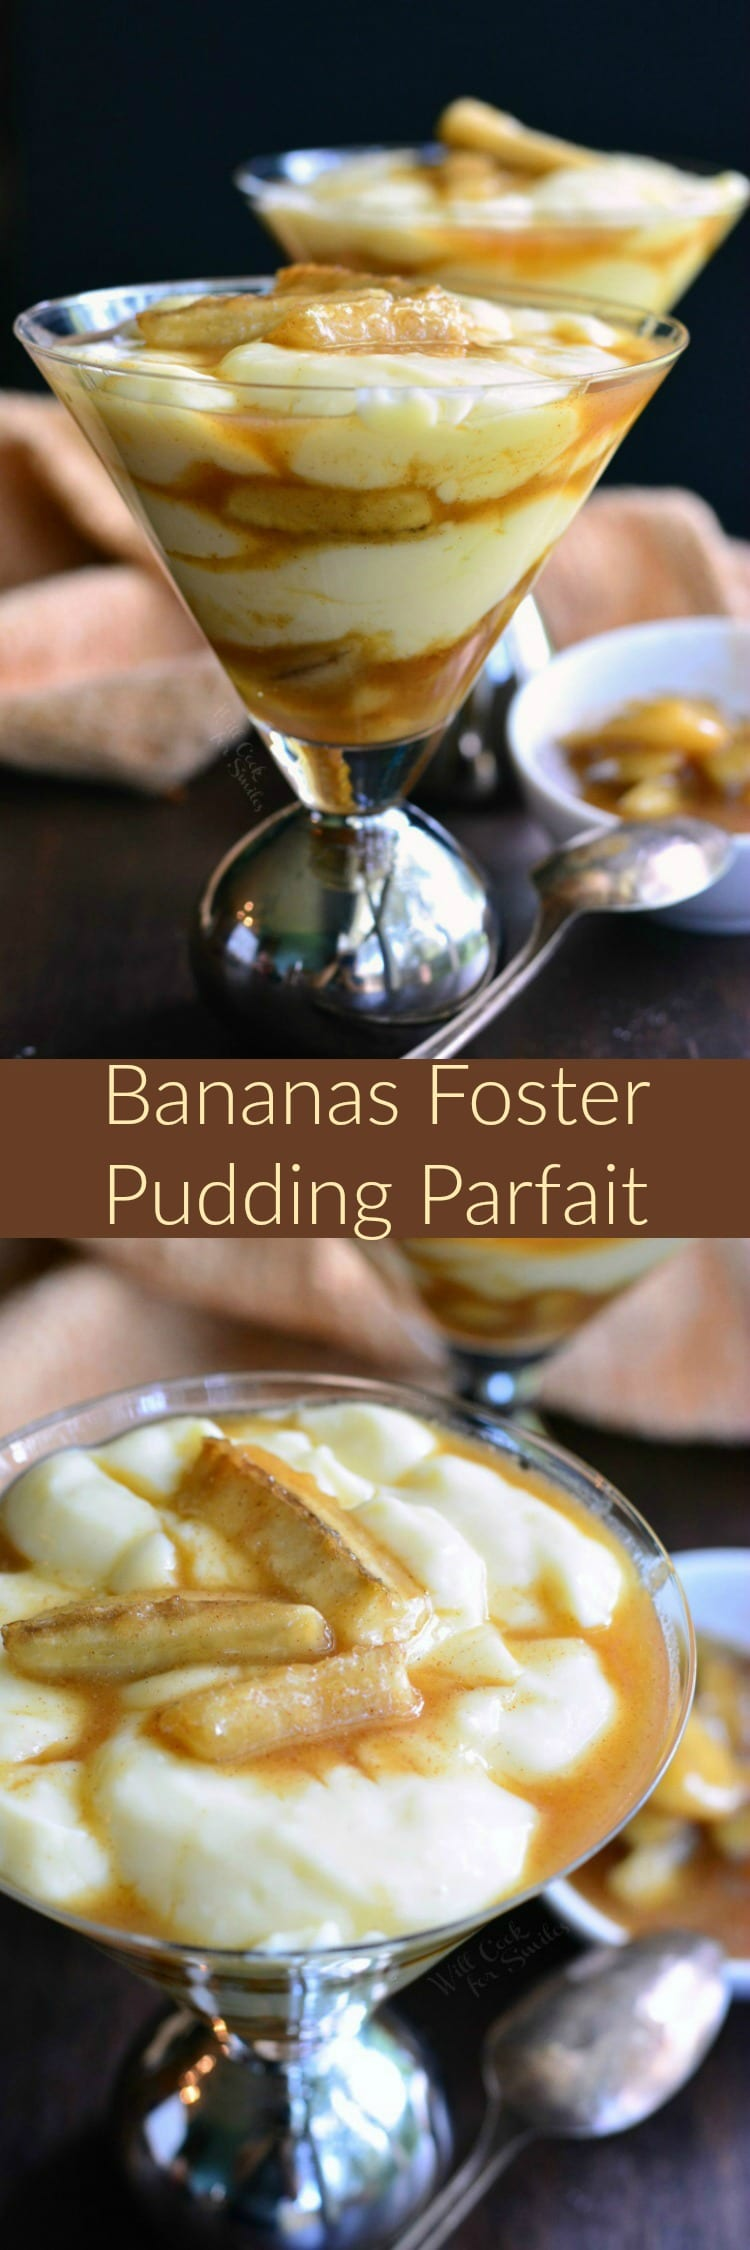 Bananas Foster Pudding Parfait. Amazing homemade vanilla pudding layered with delicious bananas foster. Smooth, sweet pudding and fresh bananas foster created a banana explosion flavor in your mouth.